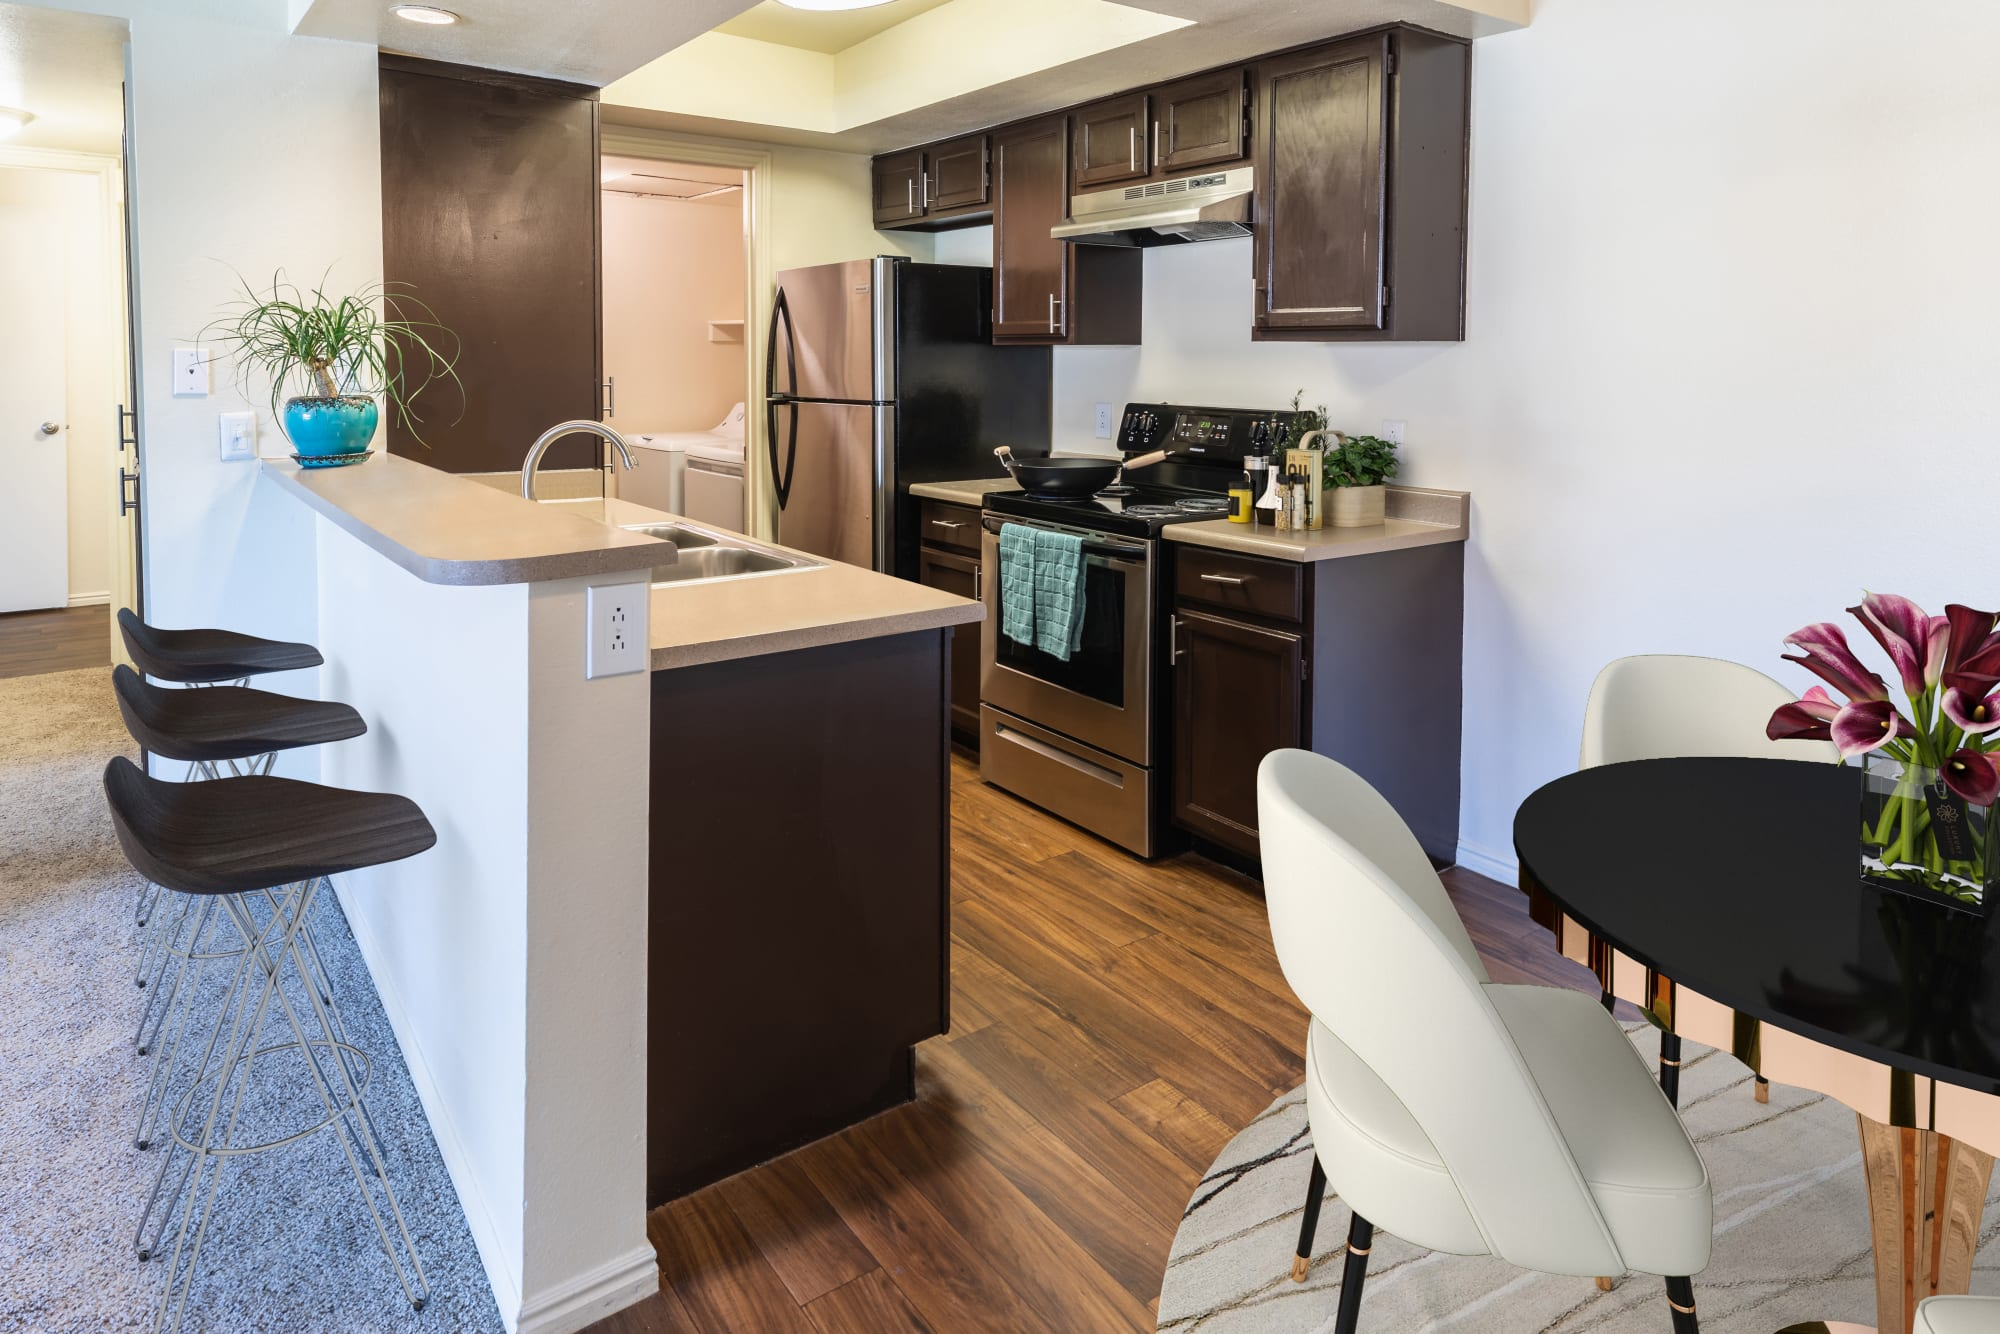 Fully equipped renovated brown kitchen and dining room with stainless steel appliances at Shadowbrook Apartments in West Valley City, Utah